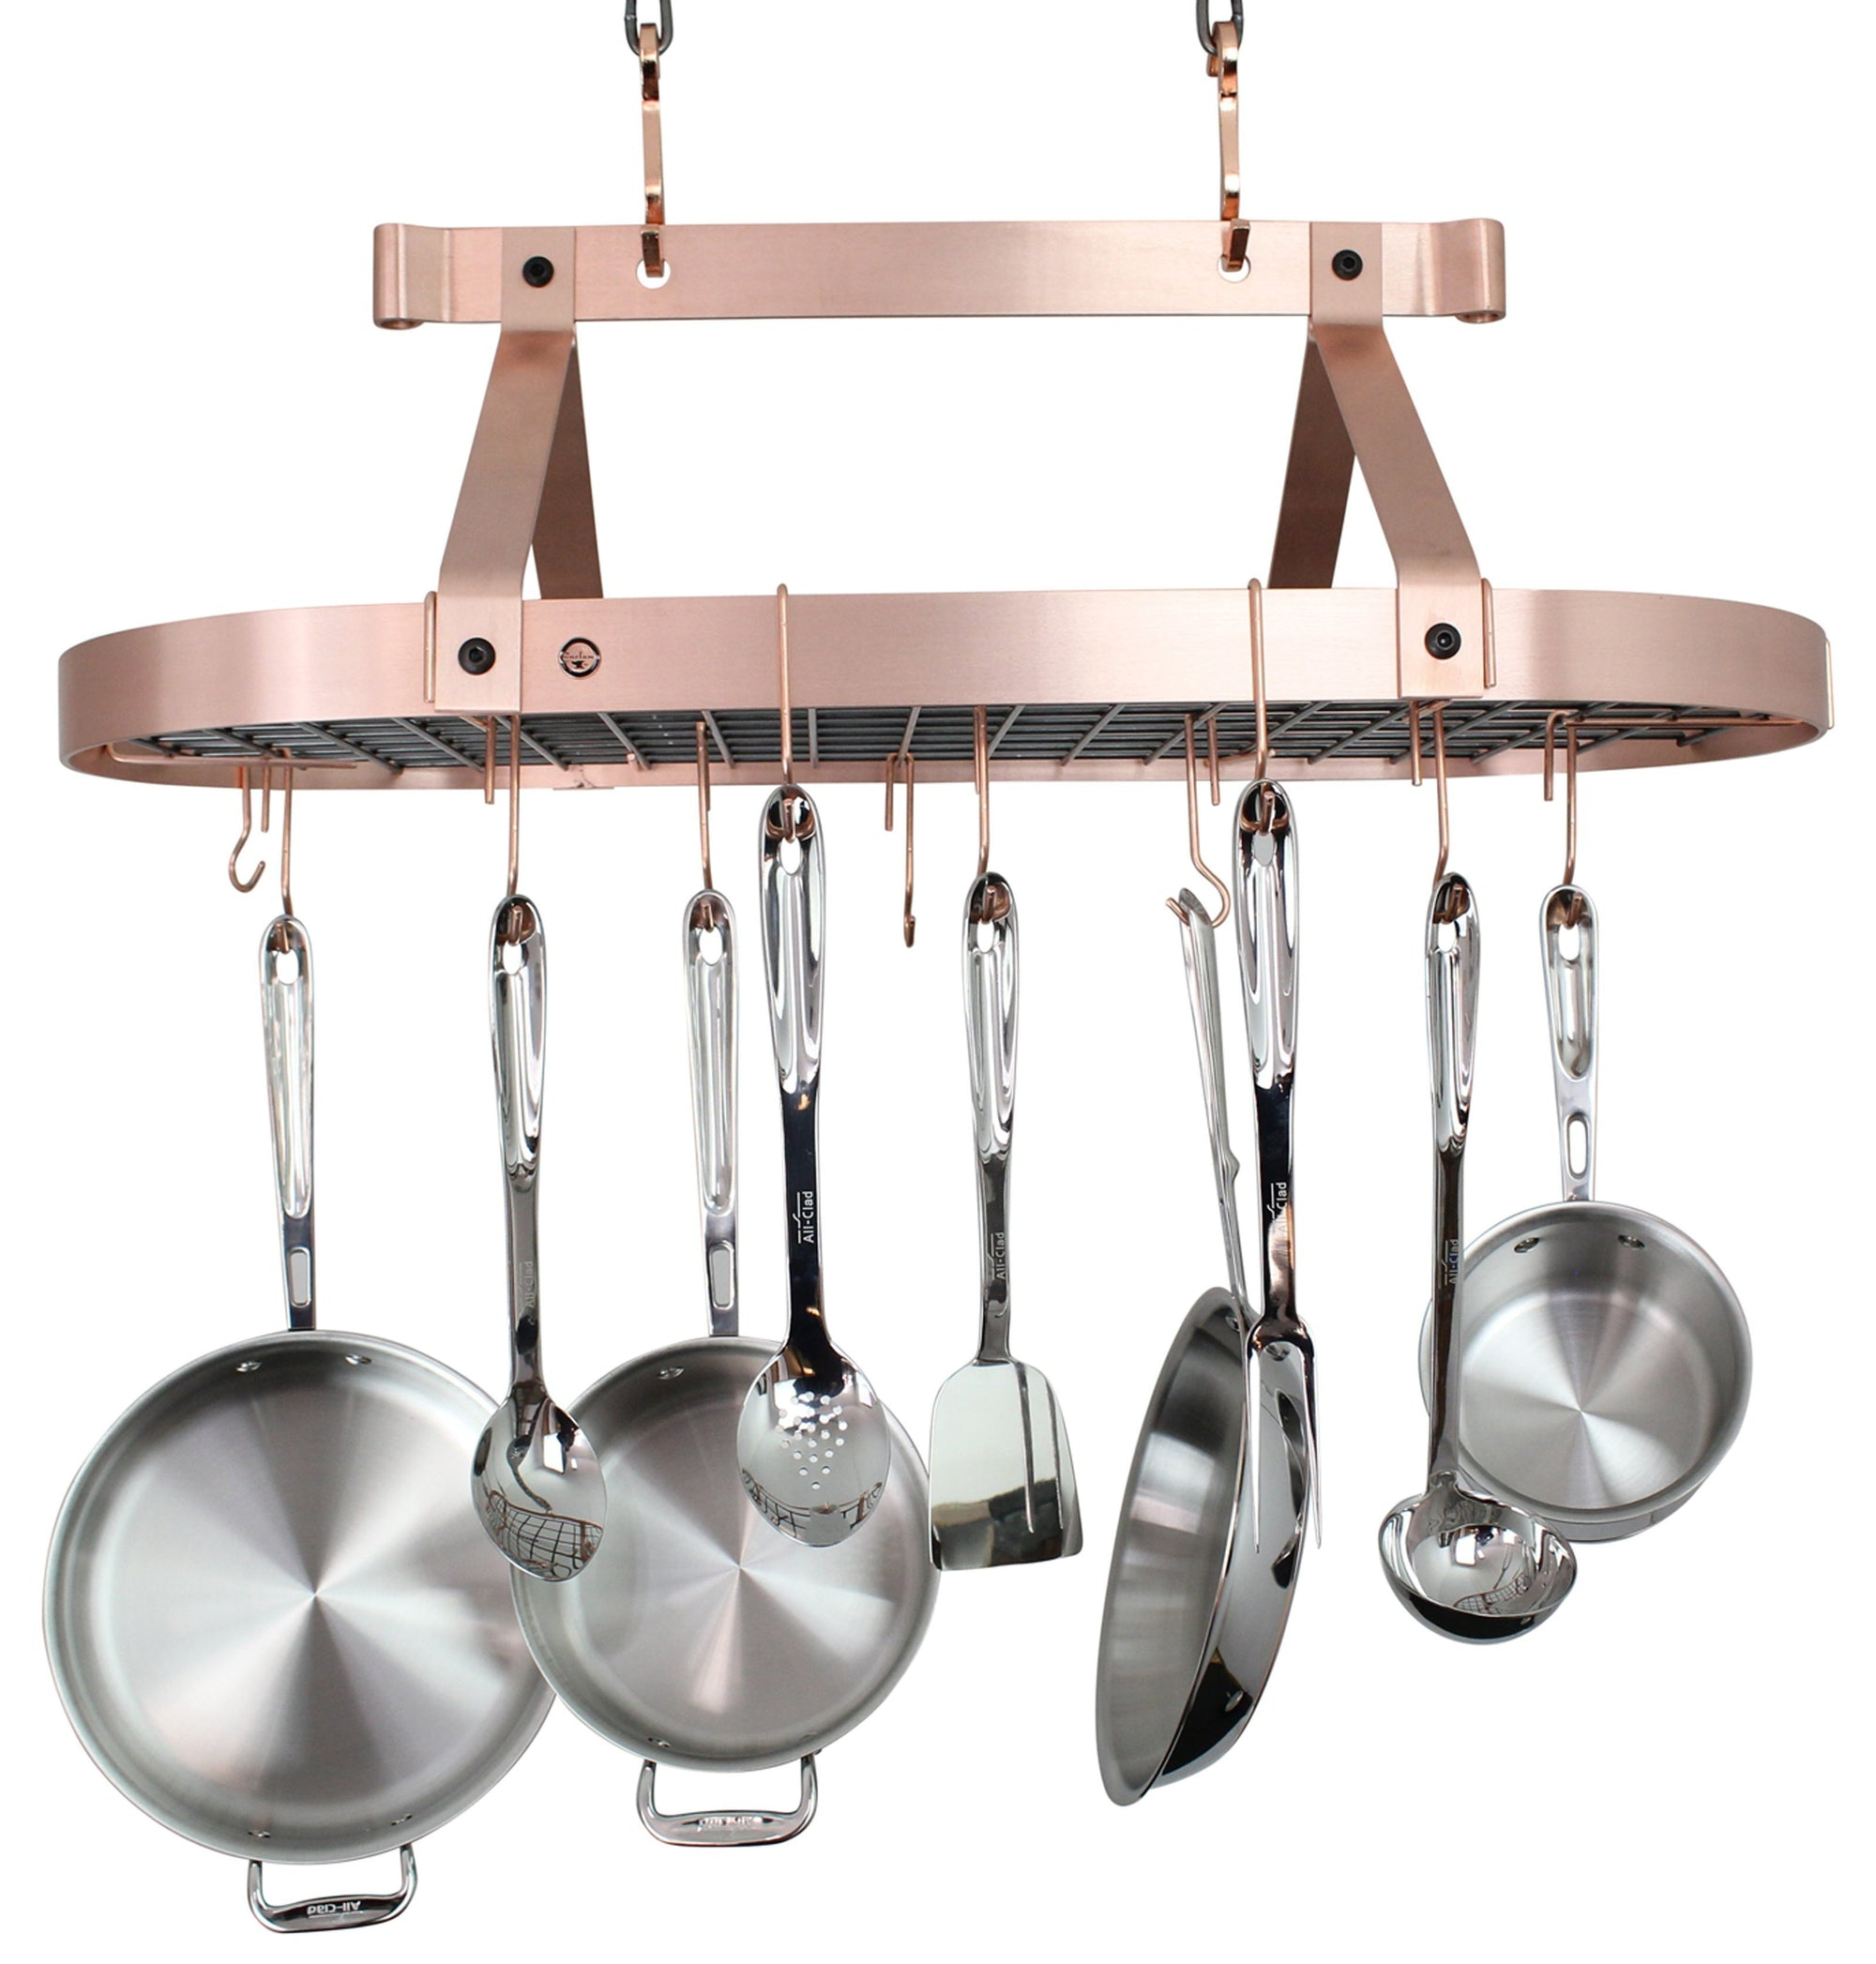 Oval Ceiling Pot Rack w/ Hooks